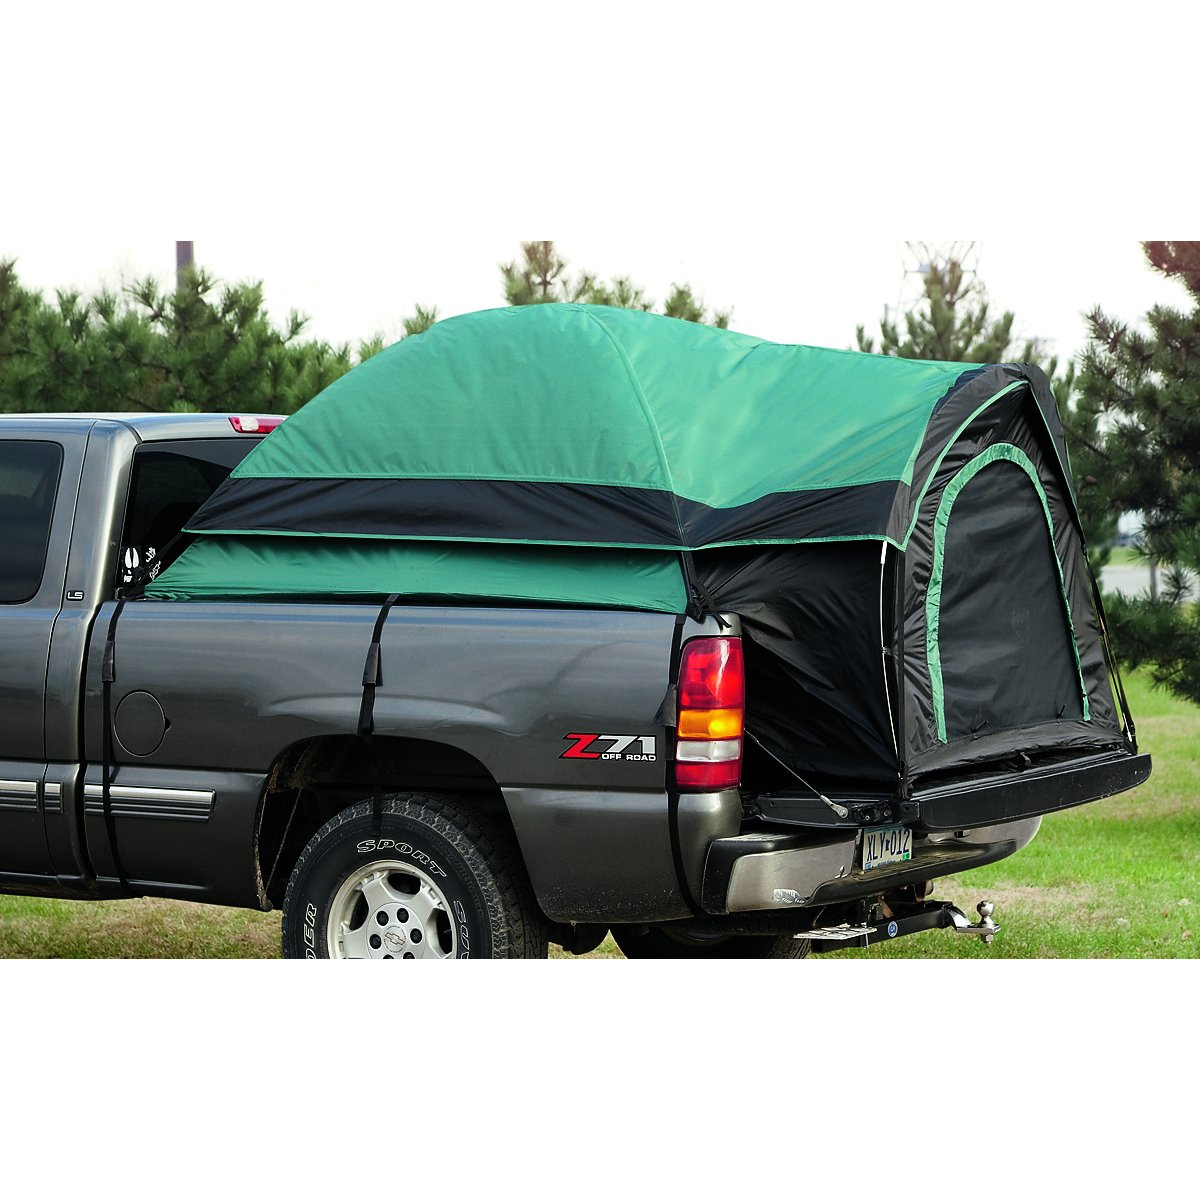 Amazon.com  Guide Gear Compact Truck Tent  Family Tents  Sports u0026 Outdoors  sc 1 st  Amazon.com & Amazon.com : Guide Gear Compact Truck Tent : Family Tents : Sports ...